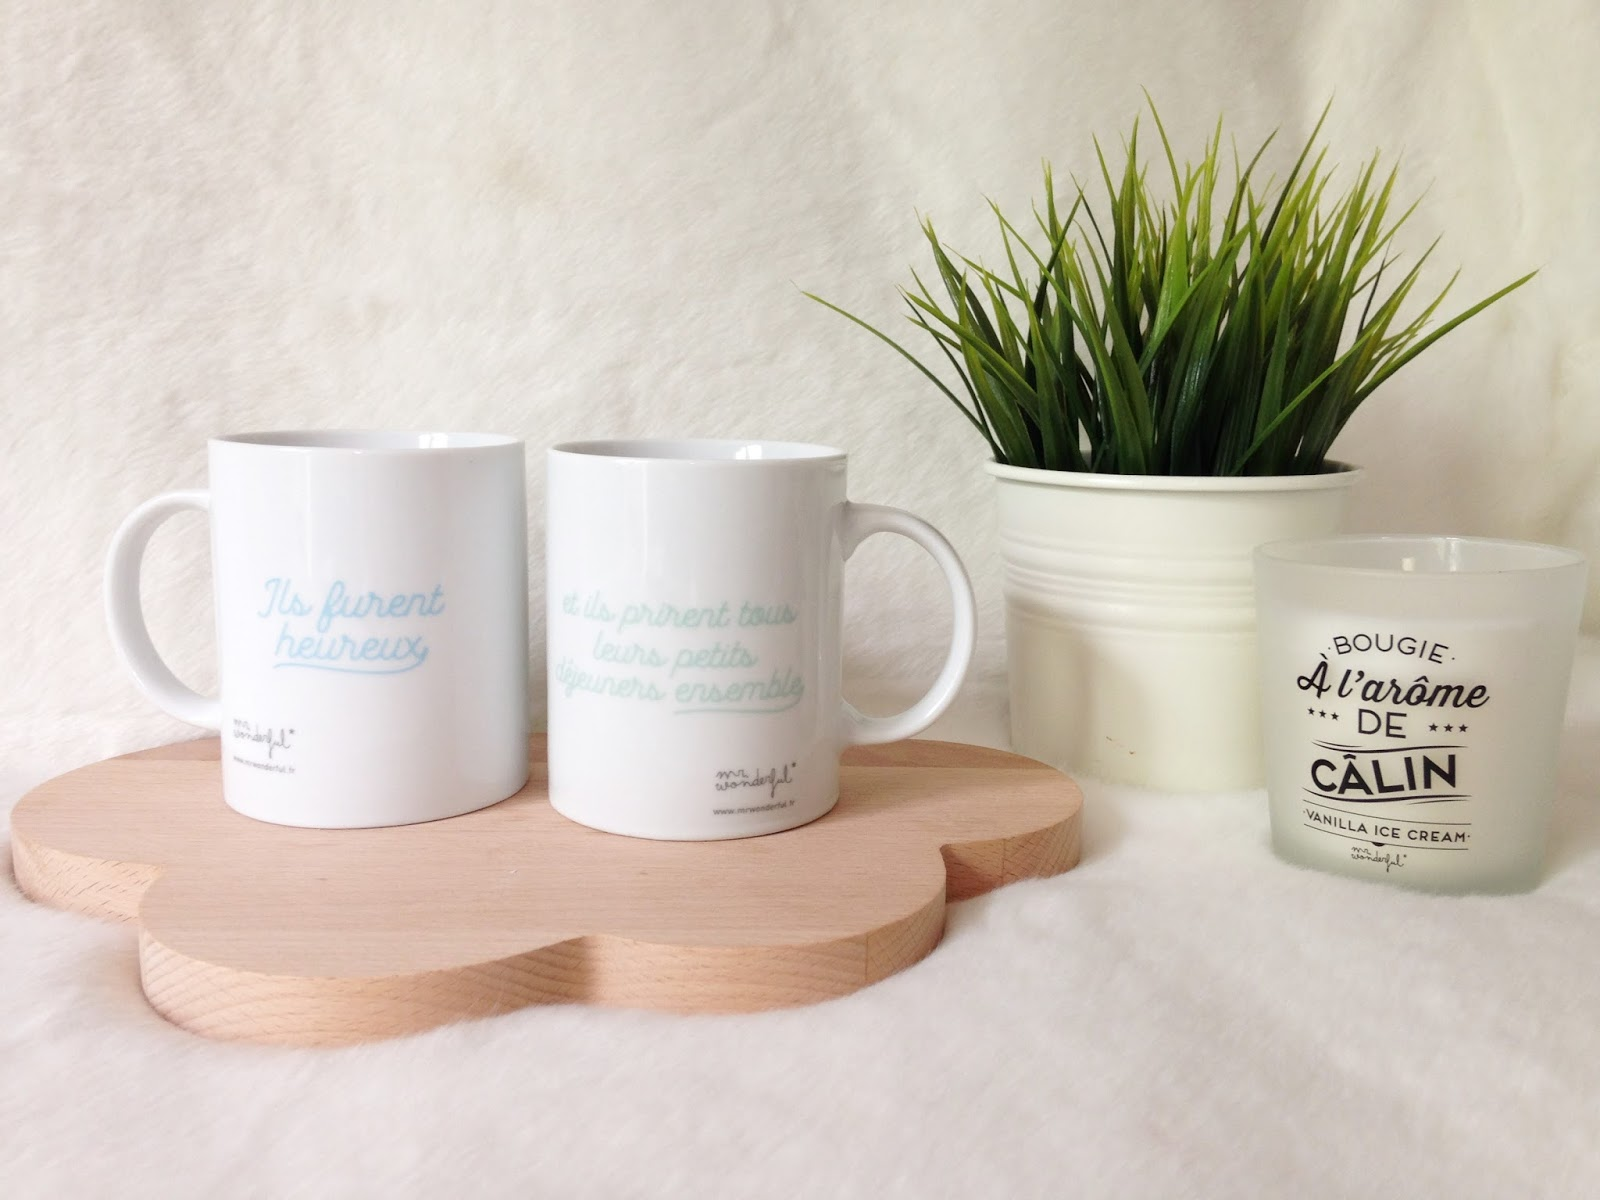 mr wonderful back to school déco décoration home eshop shop mignon adorable les gommettes de melo gommette gomette haul papeterie semainier bureau semaine planning organiser bullet journal sostrene grene autocollant stickers mug tasse amoureux duo breakfast